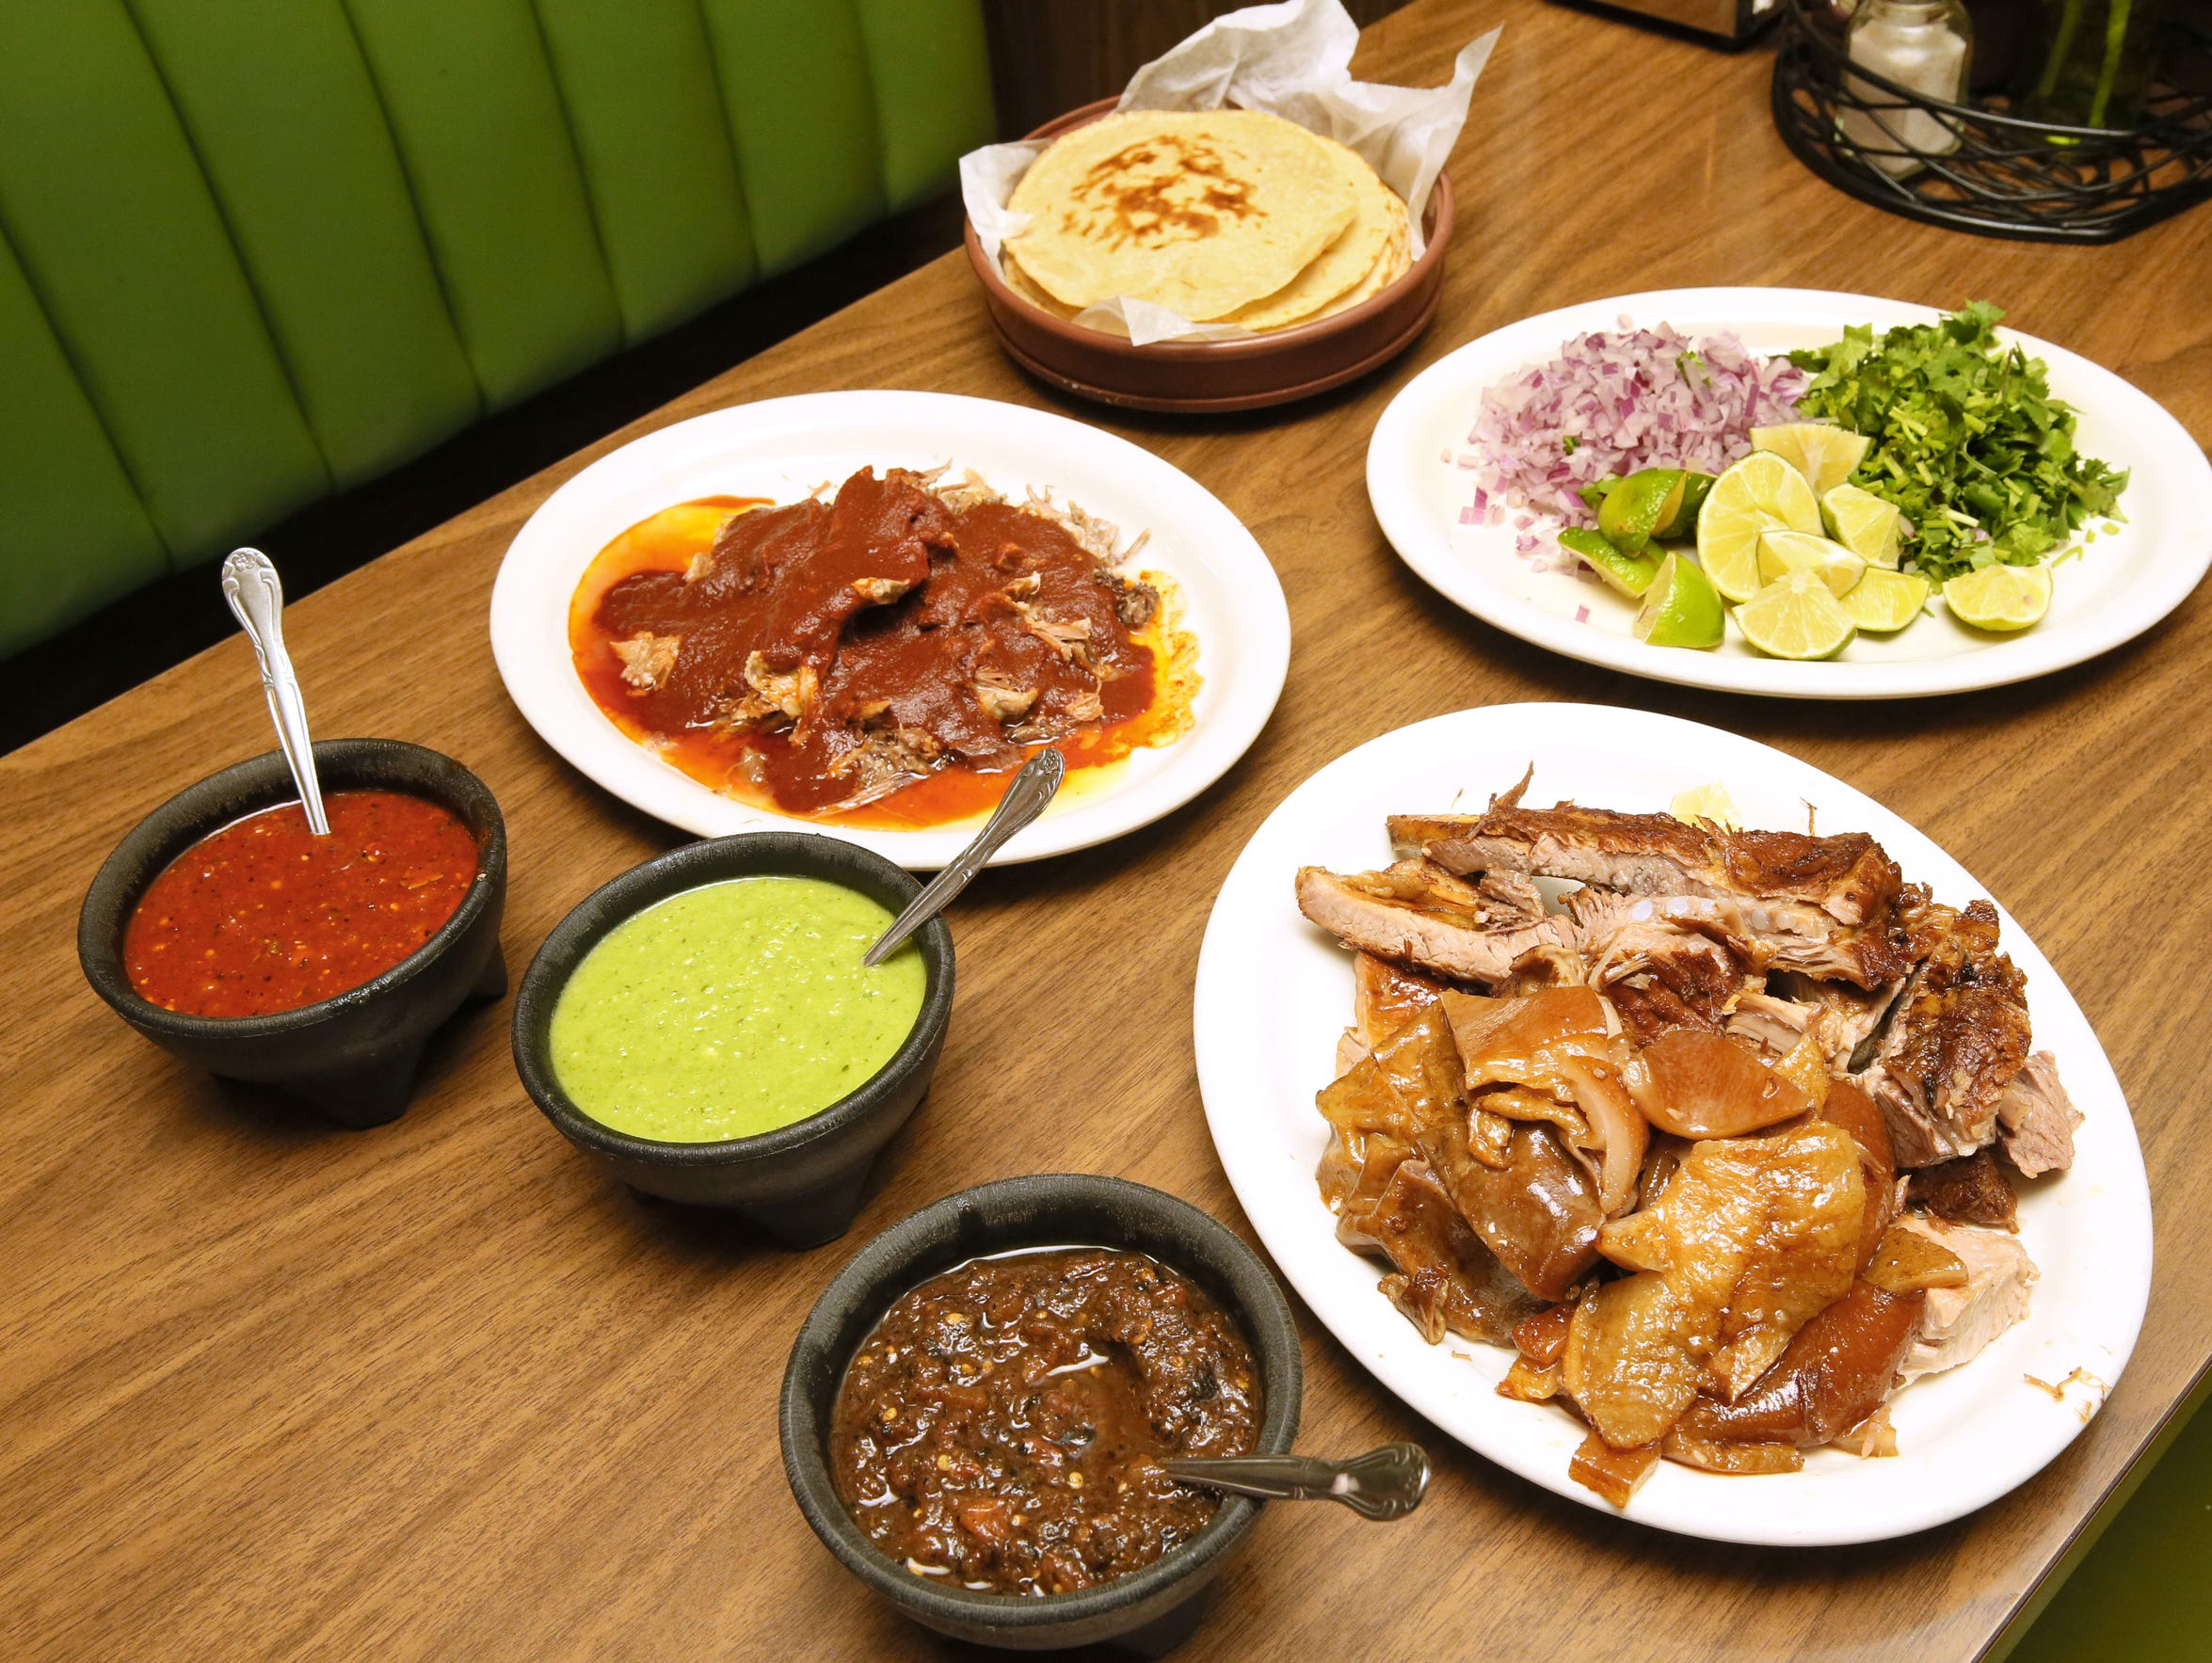 Group serving portions of the salsas (from back to